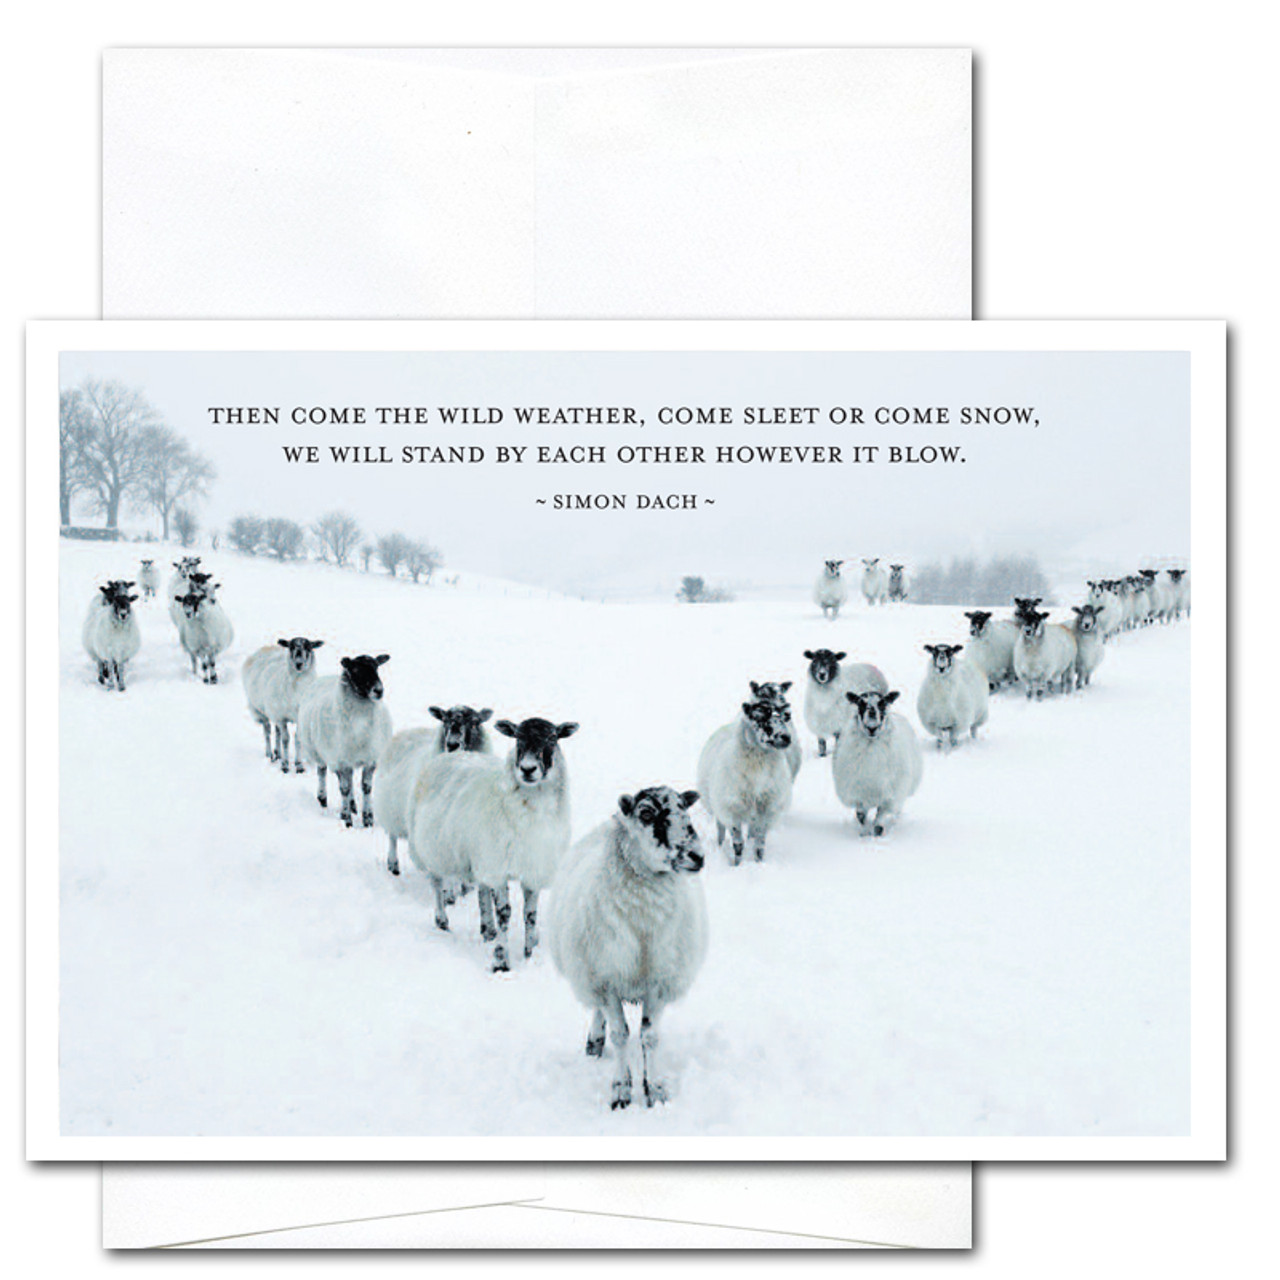 "Business New Year Card - Sleet or Snow: Cover photo shows a group of sheep standing in a ""V"" in a snow covered field with the Simon Dach quotation ""The come the wild weather, come sleet or come snow, we will stand by each other however it blow"""